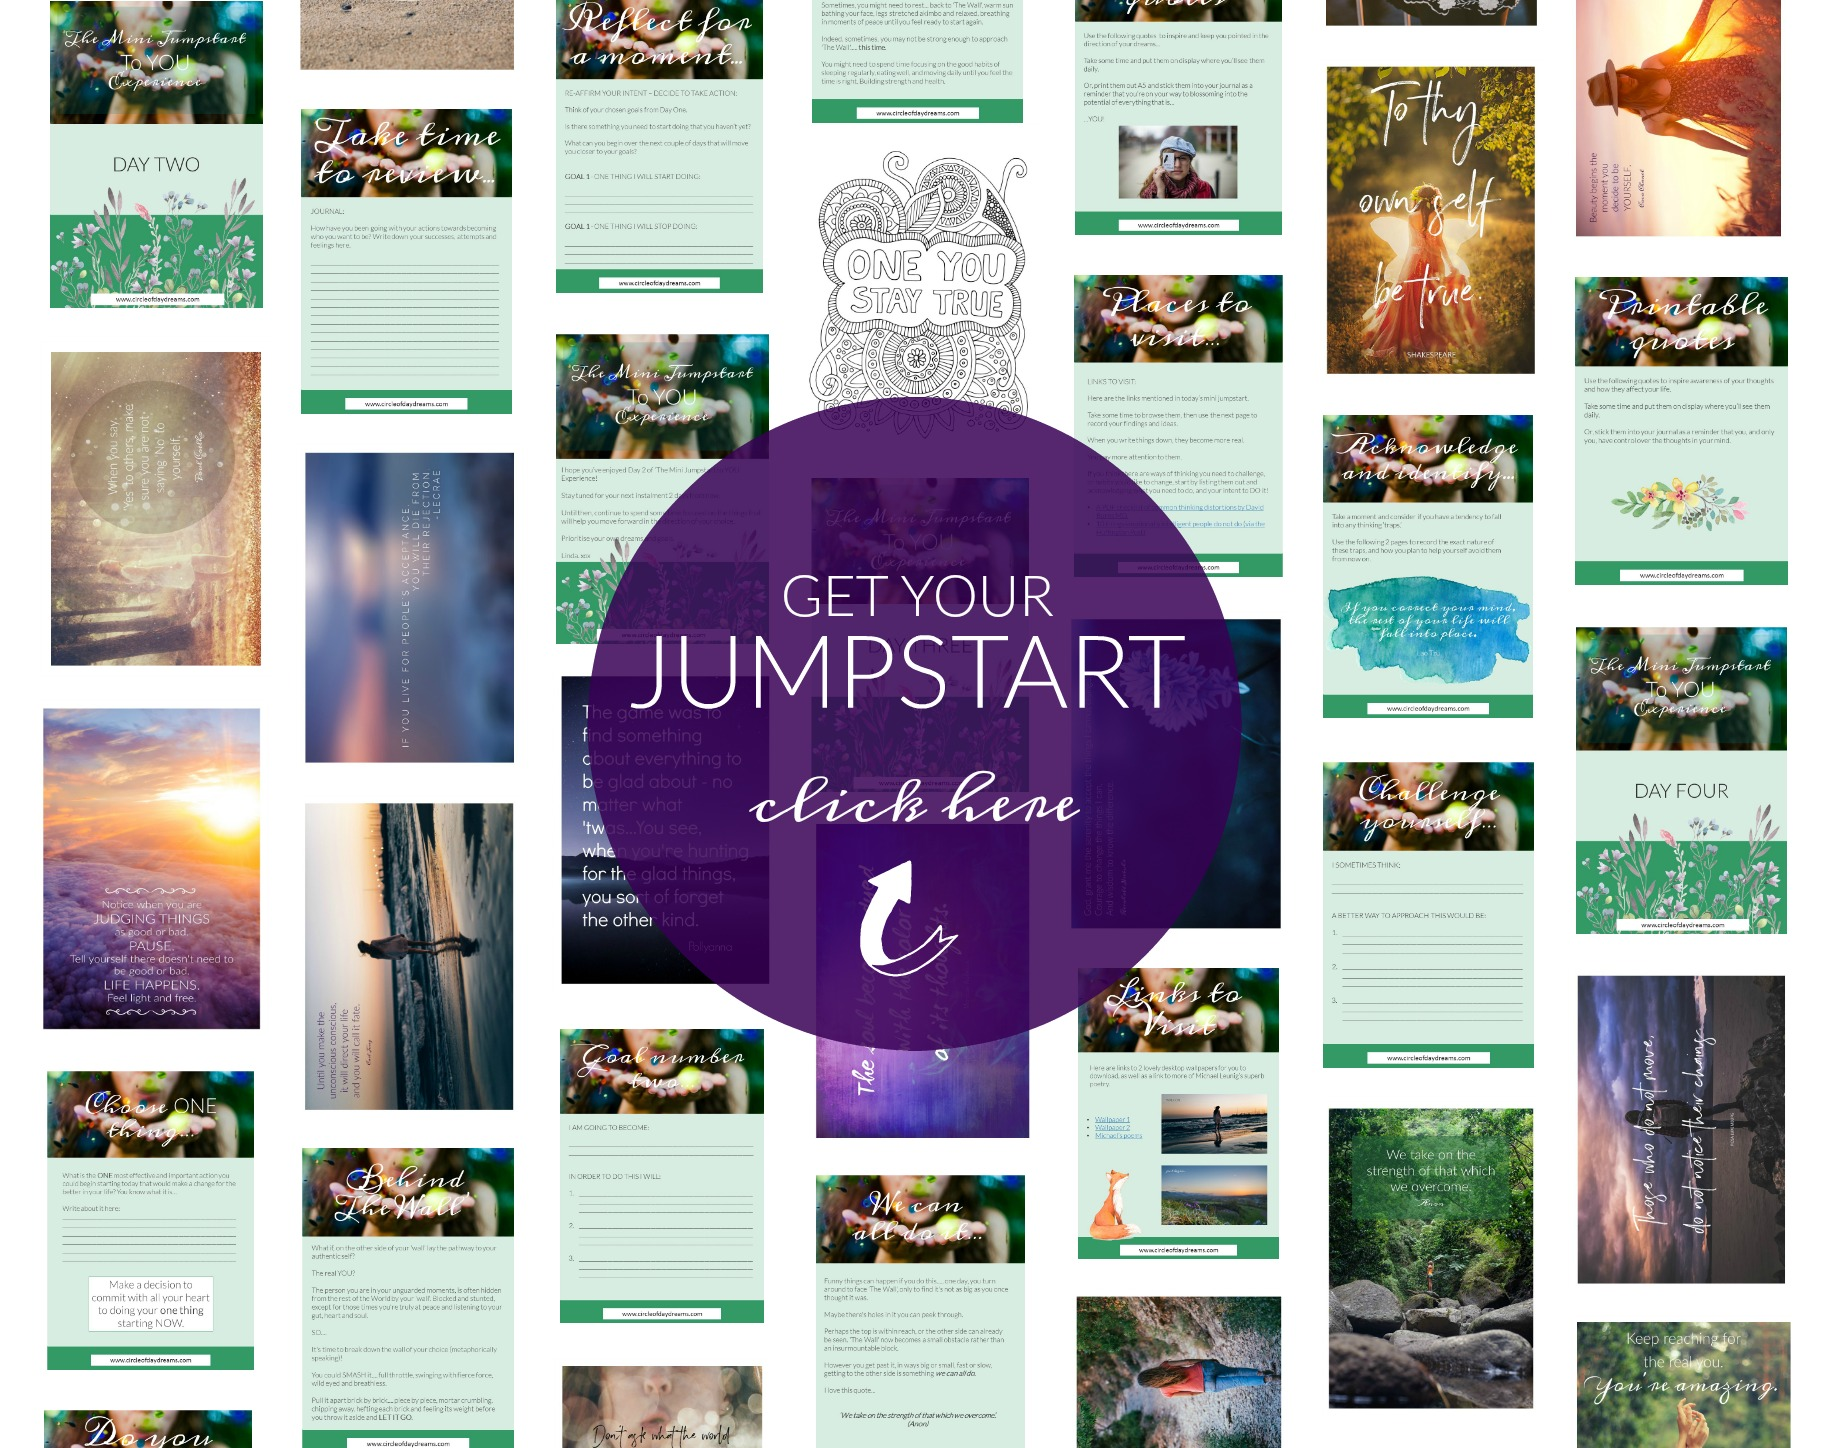 Get Your Mini Jumpstart Today Click Here. Circle of Daydreams. www.circleofdaydreams.com